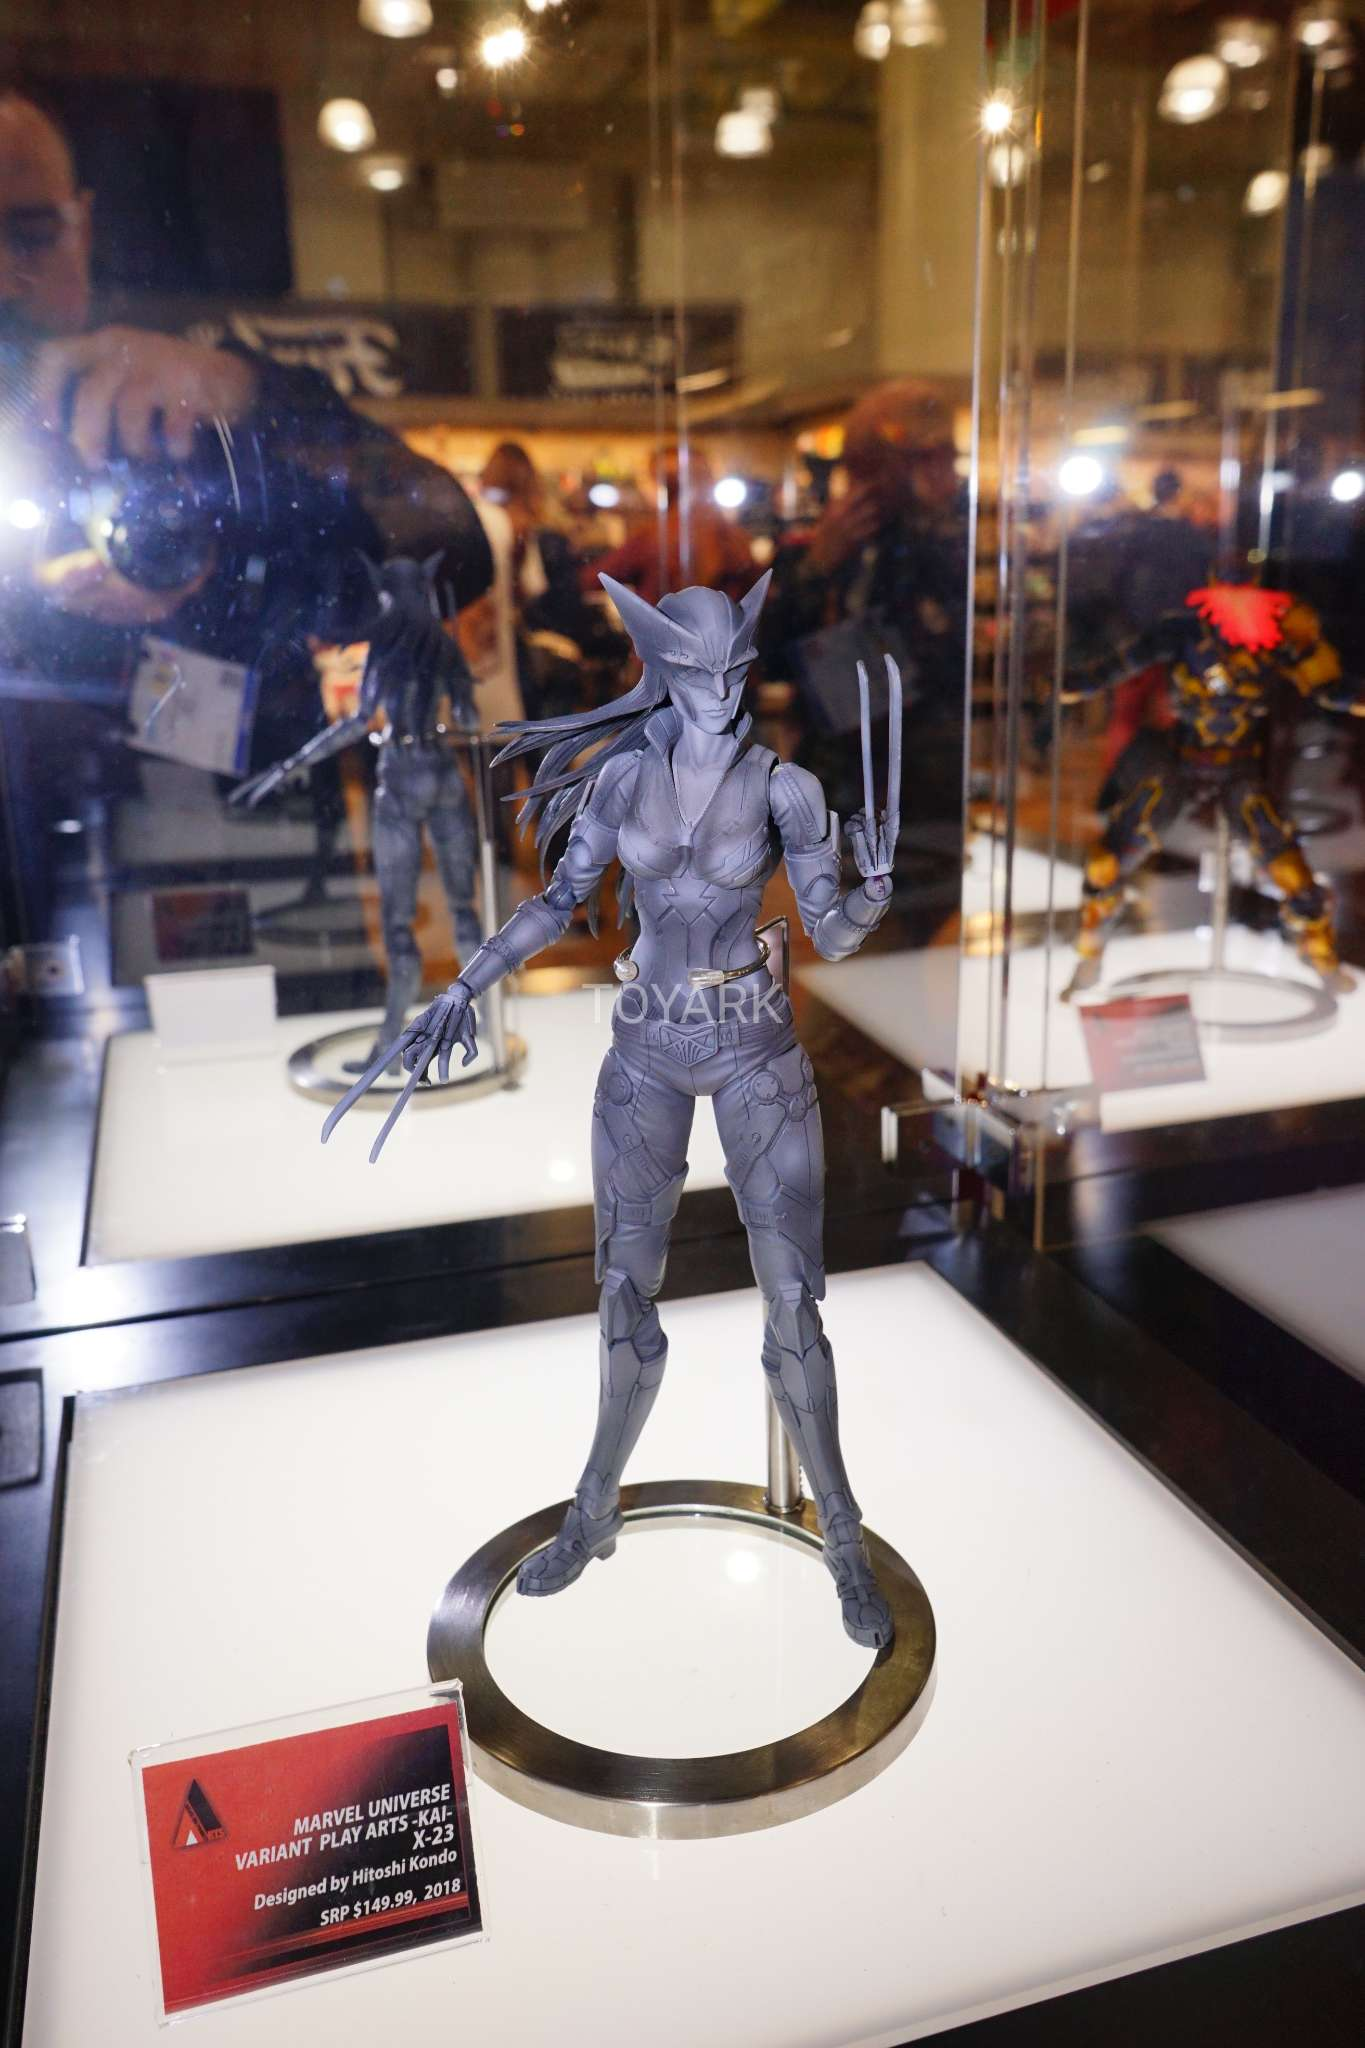 Toy Fair 2018 - Square Enix - X23 - Wolverine